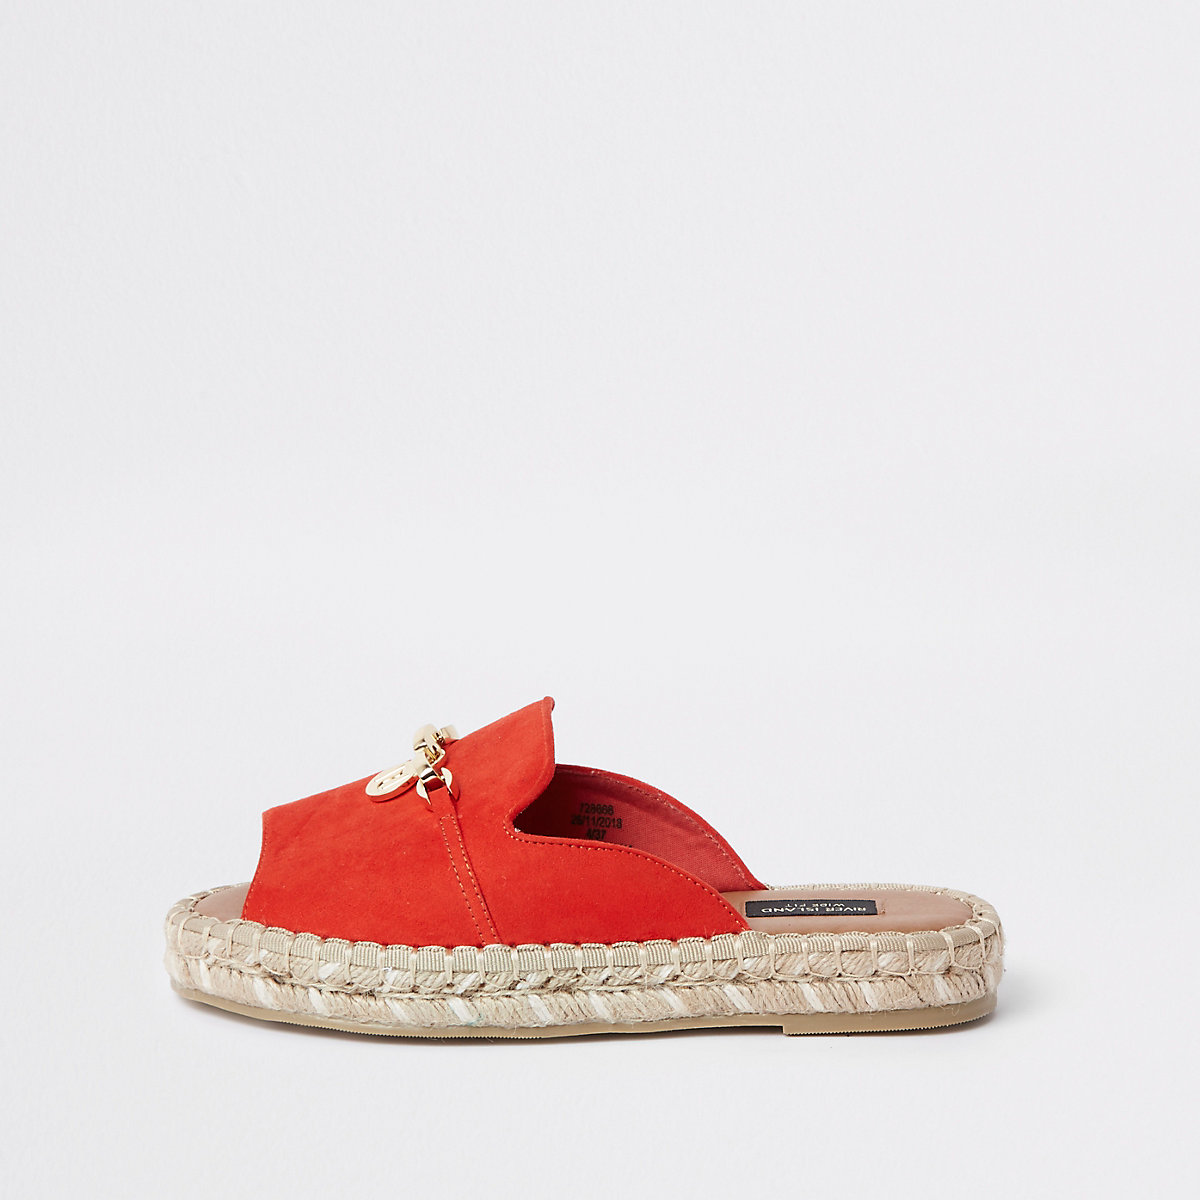 Red espadrille peep toe wide fit sandals